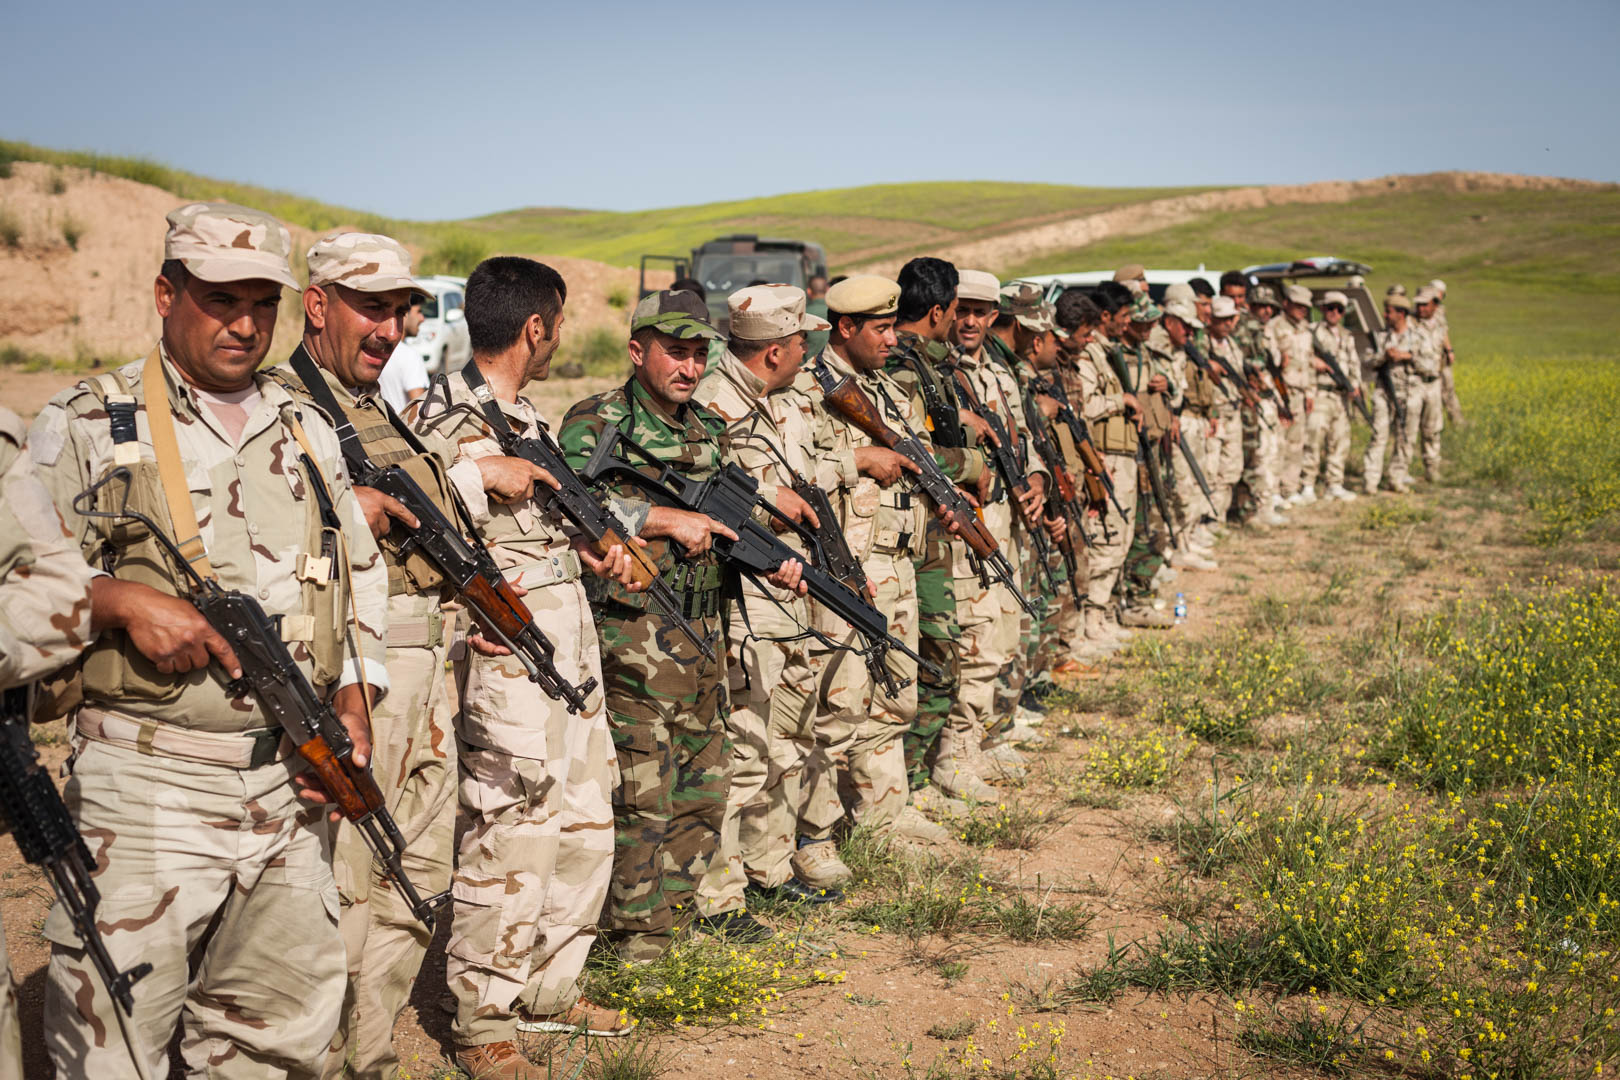 A Kurdish battalion waits for further instructions by German military advisers. The leader of the battalion, in green, is holding a German G36 rifle. These rifles have been donated in great number by the German government to equip the Peshmerga against the Islamic State in Iraq.